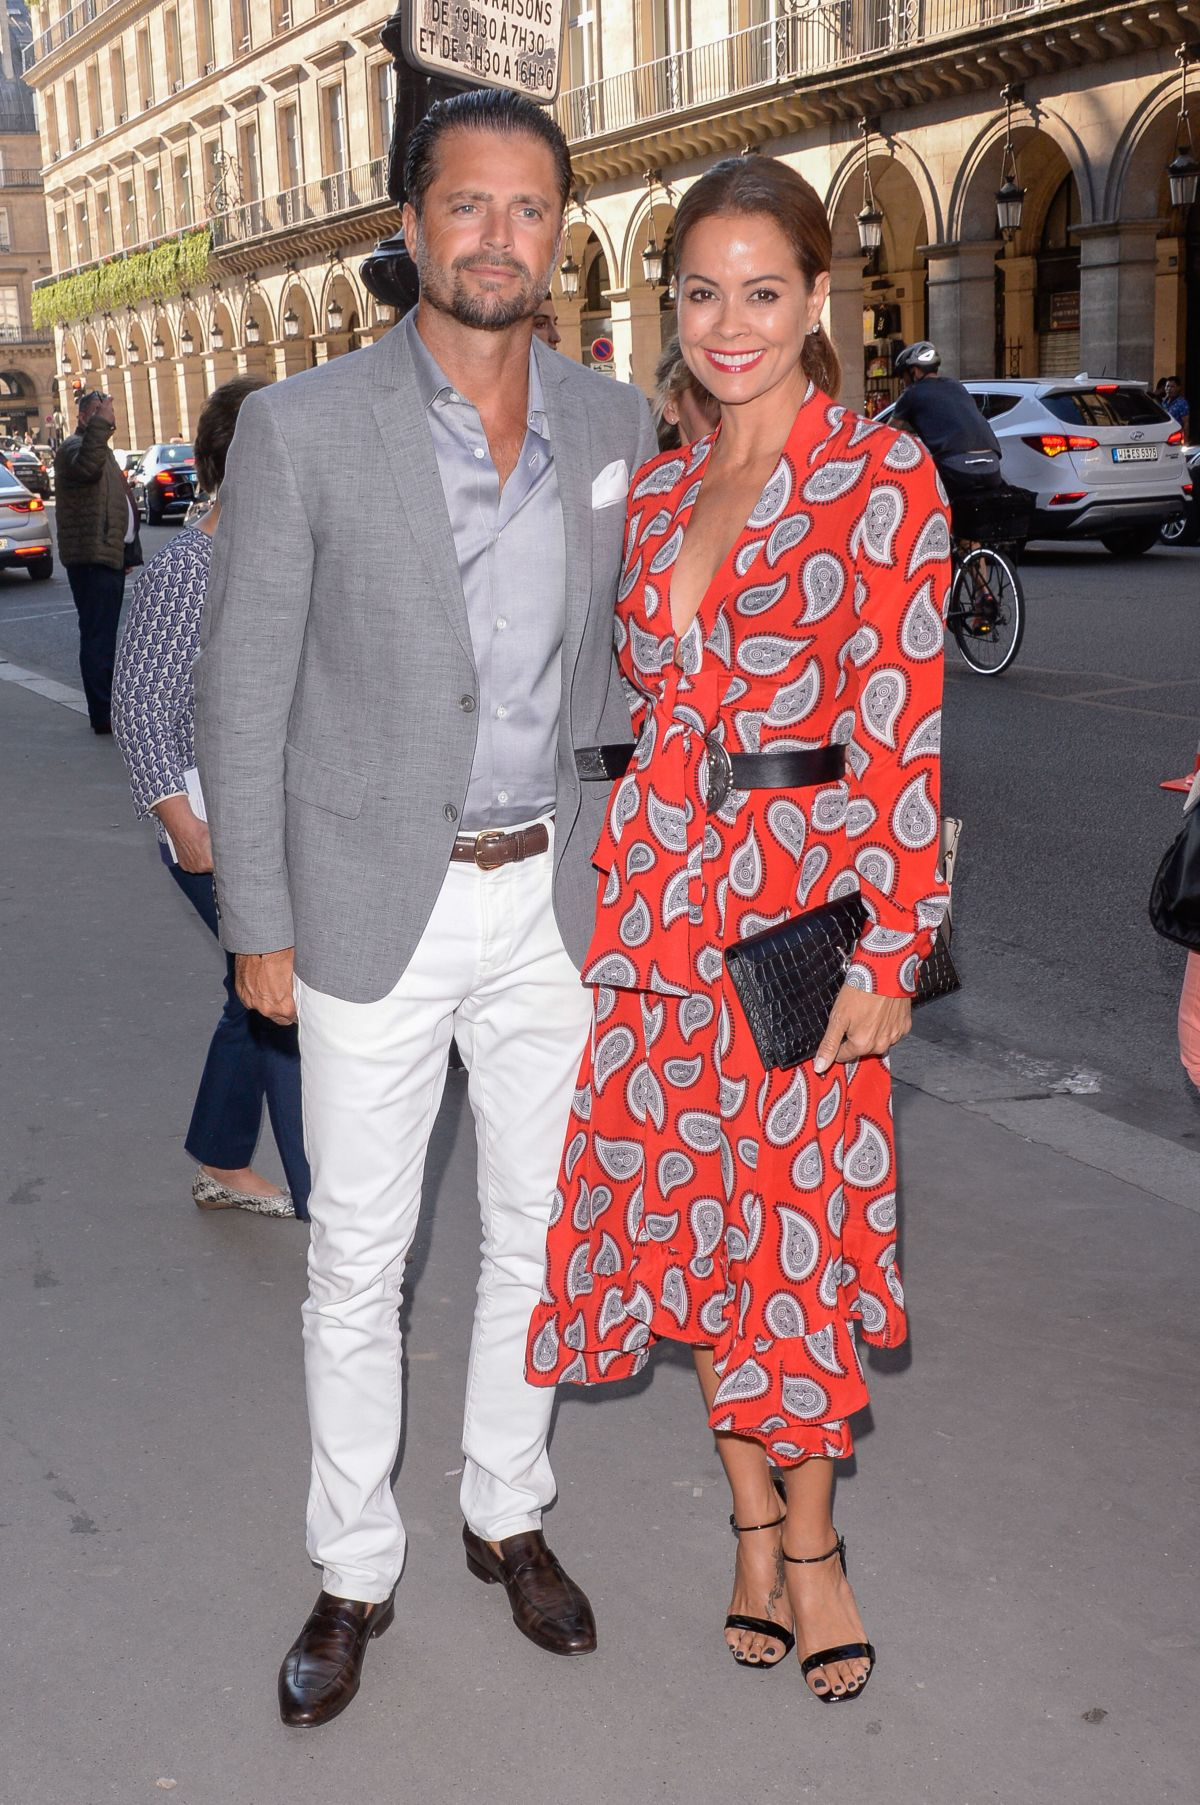 BROOKE BURKE Arrives at Christian Dior Show at Haute Couture Fashion Week in Paris 07/03/2017